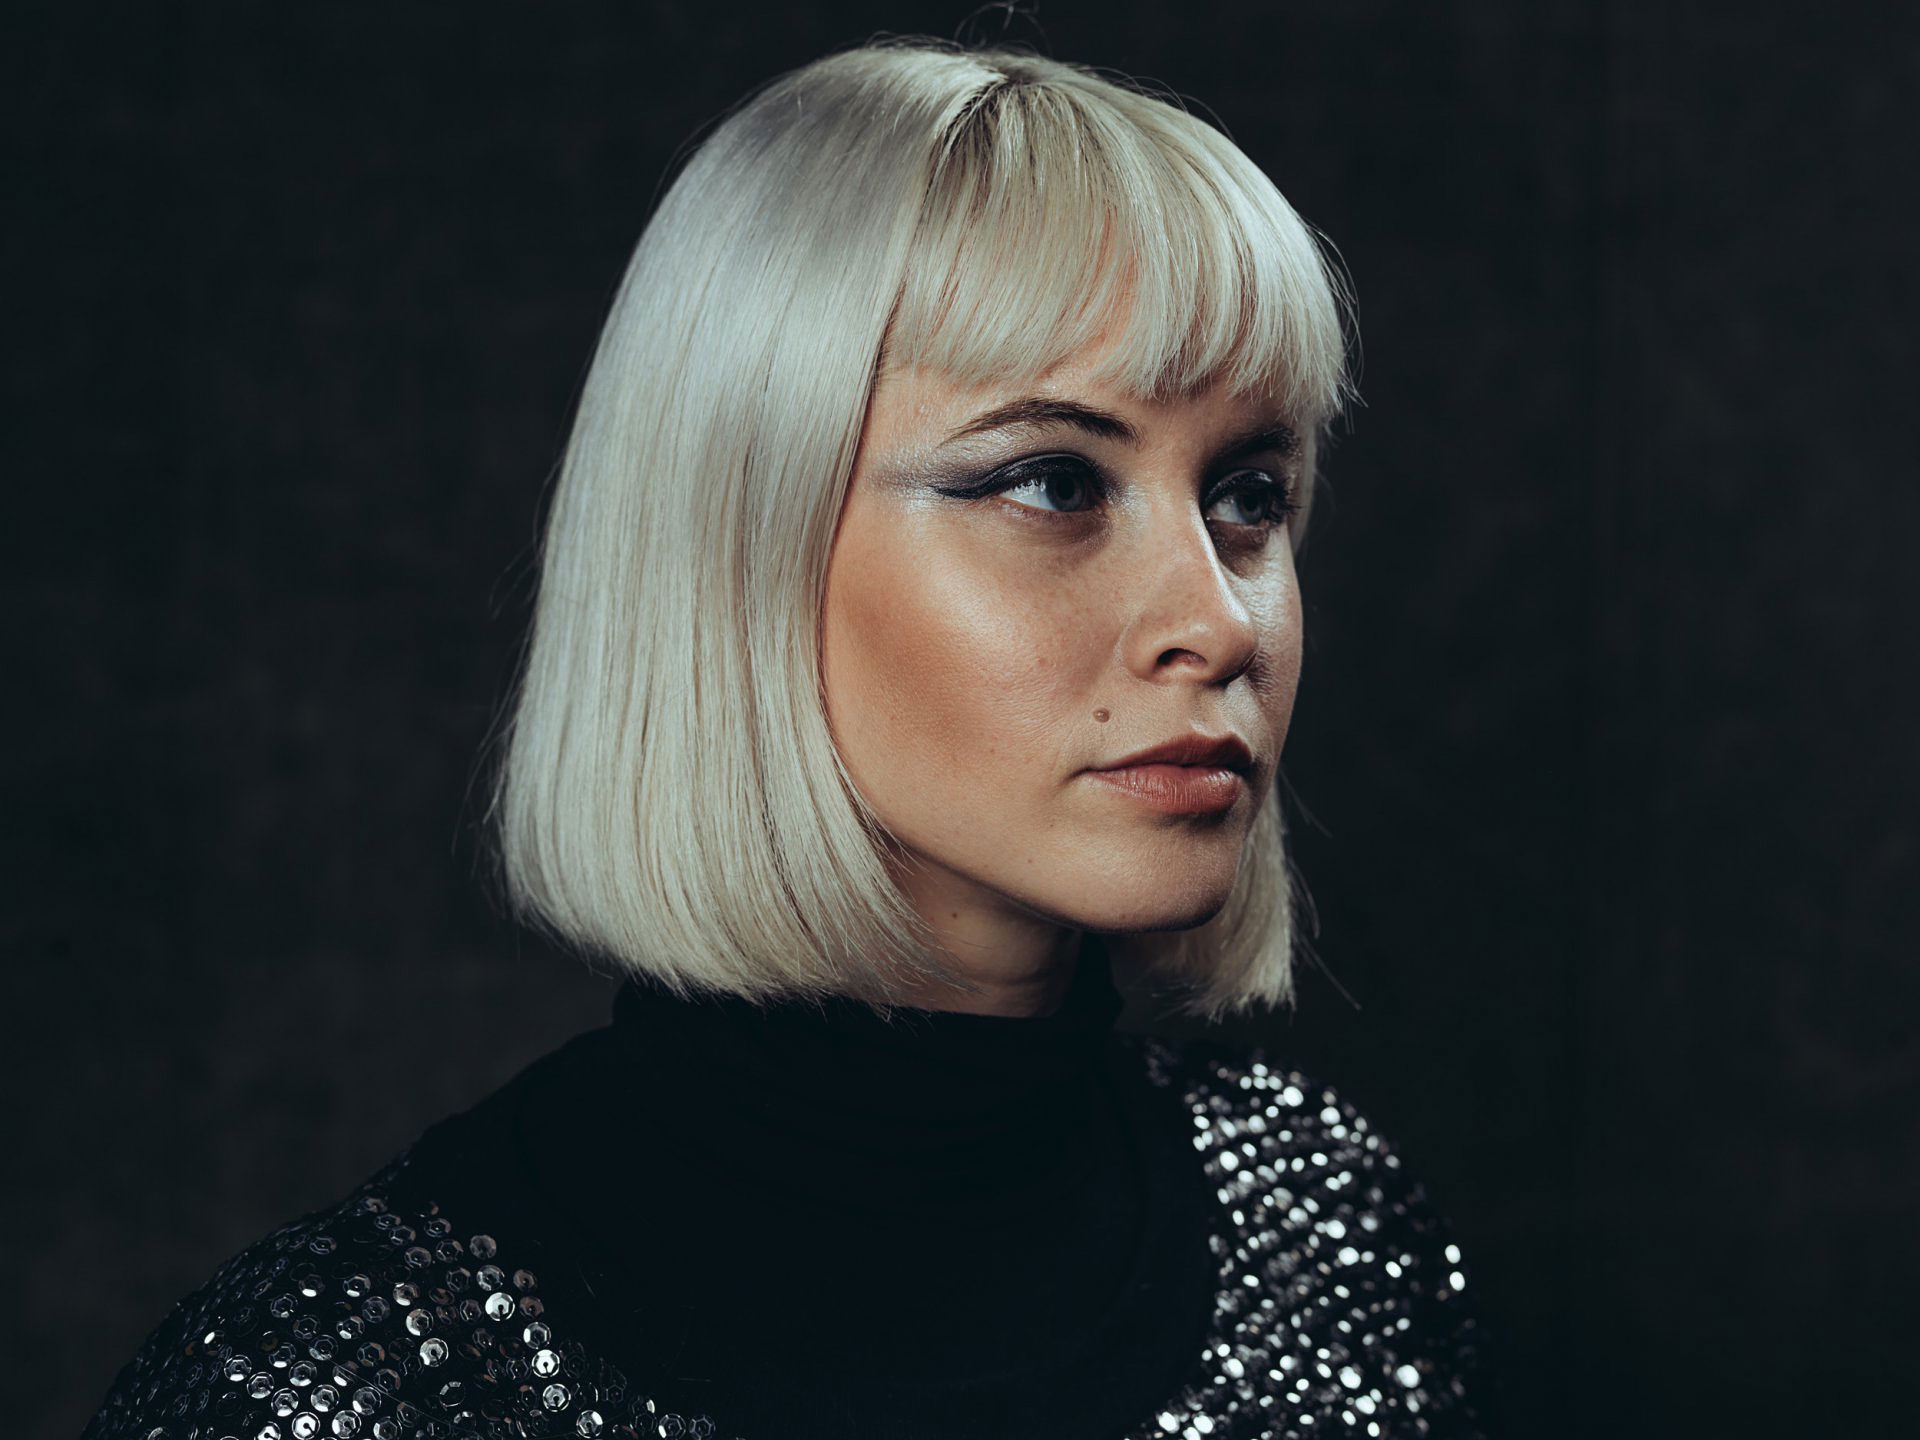 ­photo, photos, photography, photographer, photographers, woman, women, blonde, wig, platinum, bangs, eyeshadow, makeup, editorial, beauty mark, sequins, silver, dark, studio